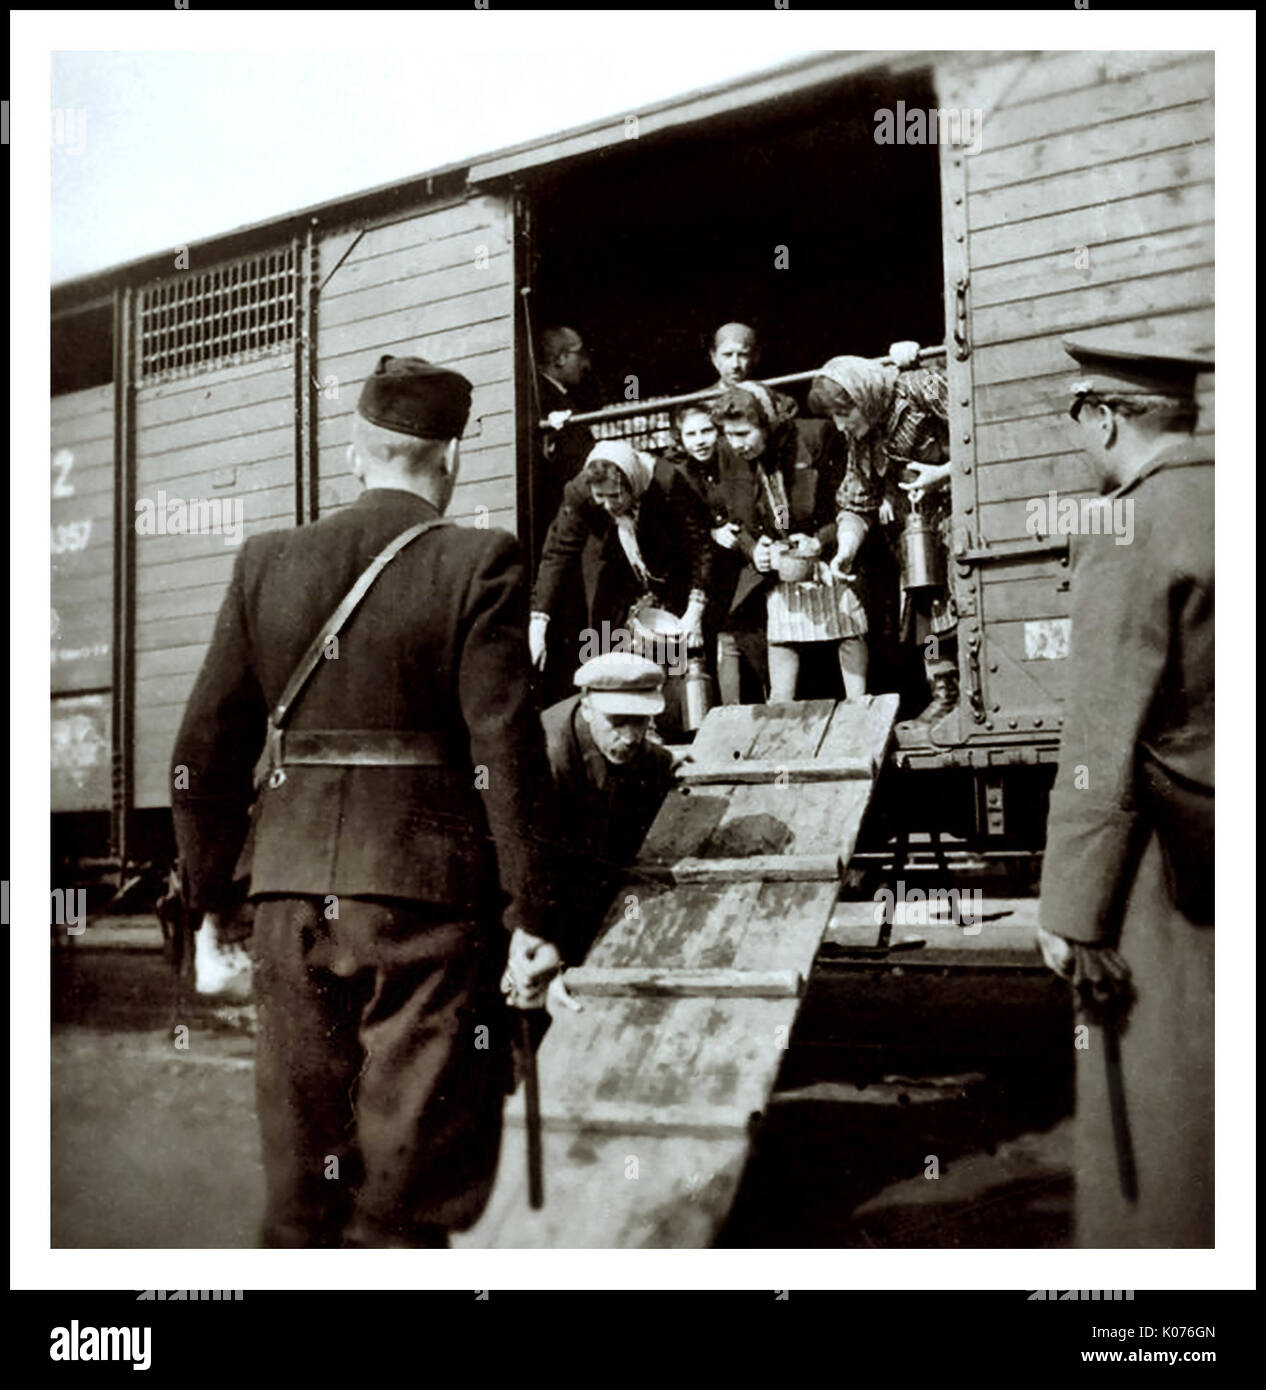 """Jewish women and children arrive by rail in bare unheated rail carriages to Auschwitz-Birkenau, a WW2 German Nazi Concentration & Extermination camp. Jewish children made up the largest group of those deported to the camp. They were usually sent there along with adults, beginning in early 1942, as part of the """"final solution of the Jewish question""""—the total destruction of the Jewish population of Europe...Auschwitz concentration camp was a network of German Nazi concentration camps and extermination camps operated by the Third Reich in Polish areas annexed by Nazi Germany during World War II. - Stock Image"""